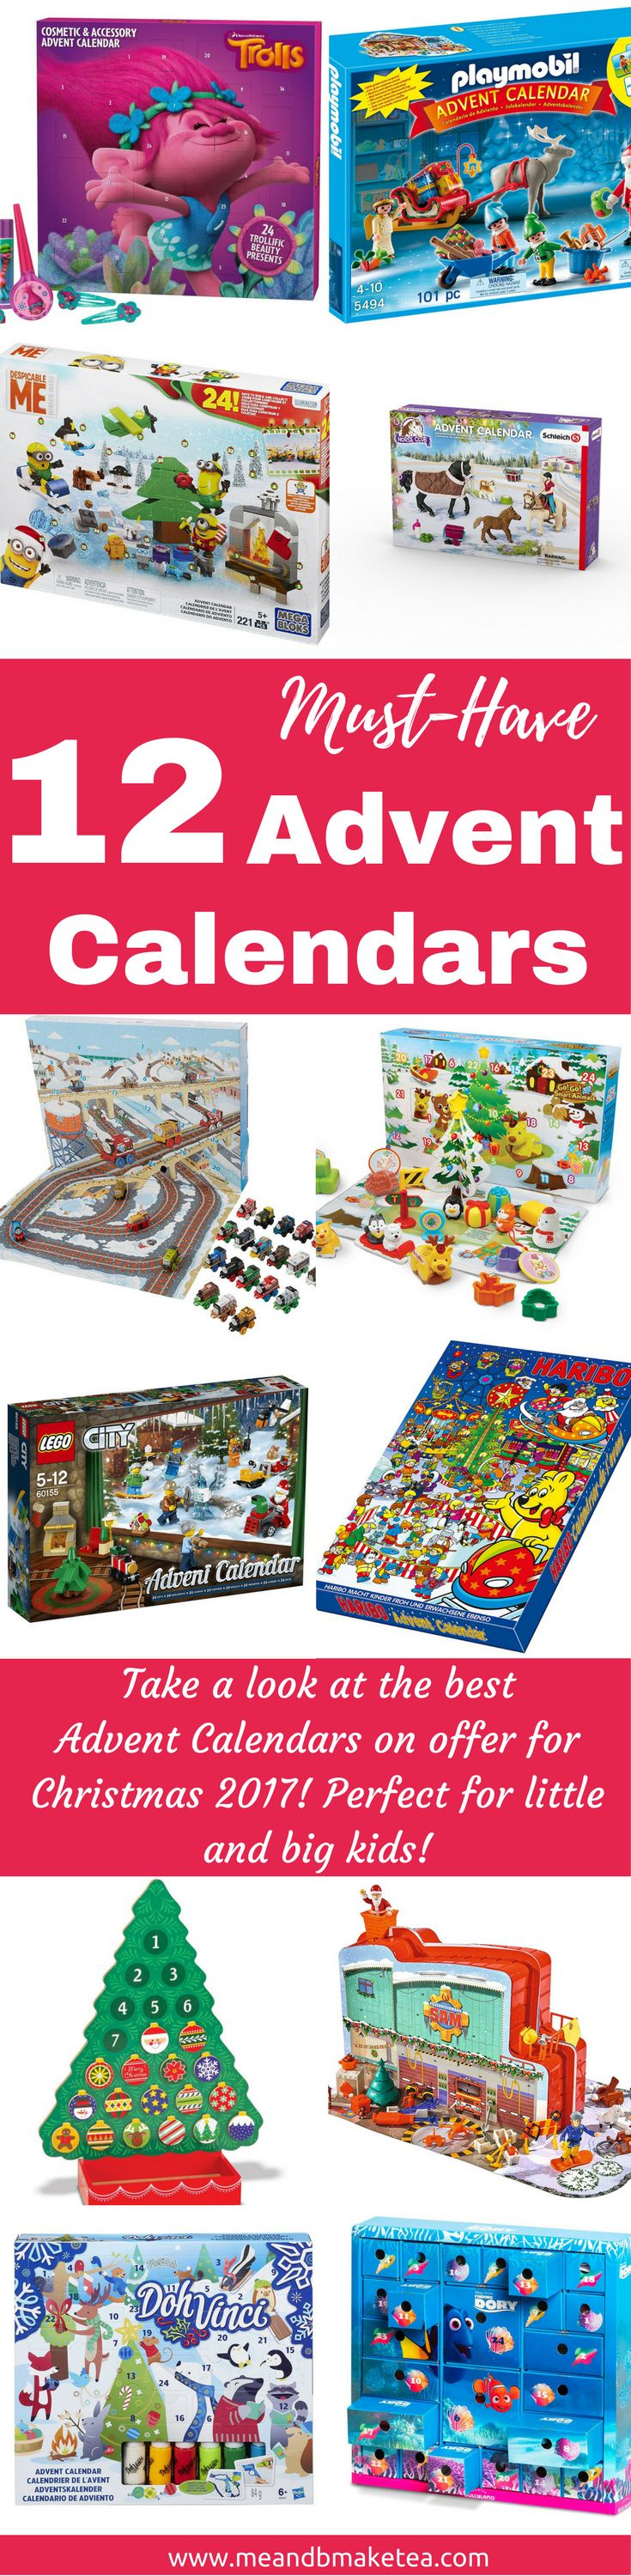 the best advent calendars for kids 2017 round up christmas! Today on the blog I'm looking atAdvent Calendars. I know it's early but come on, I need to get my bum in gear and get organized. To help you too, I've rounded up some of my favourite ones for kids. This post does contain affiliate links, which basically means I get a small commission if you buy said calendar through the links below. Don't let that put you off though, there really are some fun calendars here!